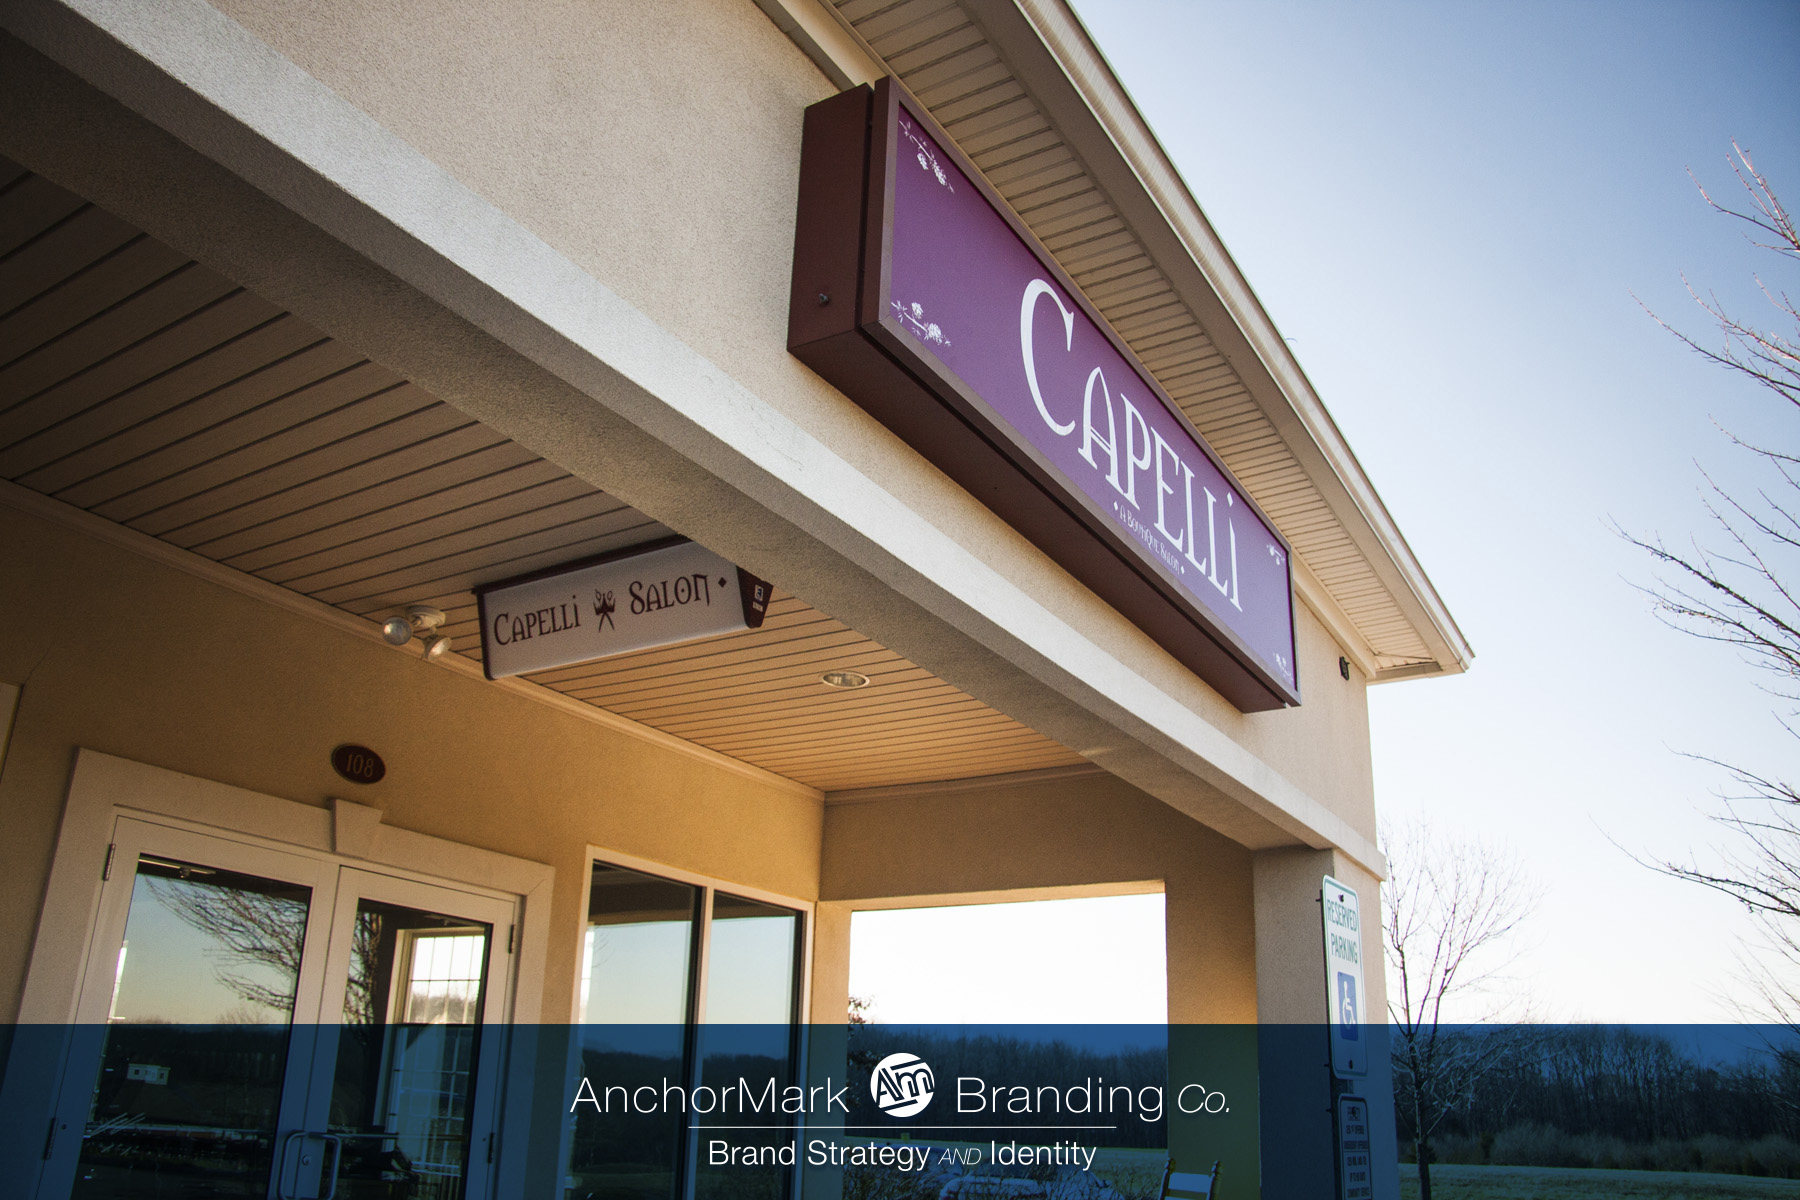 Capelli Shop of Pennington Exterior Signs